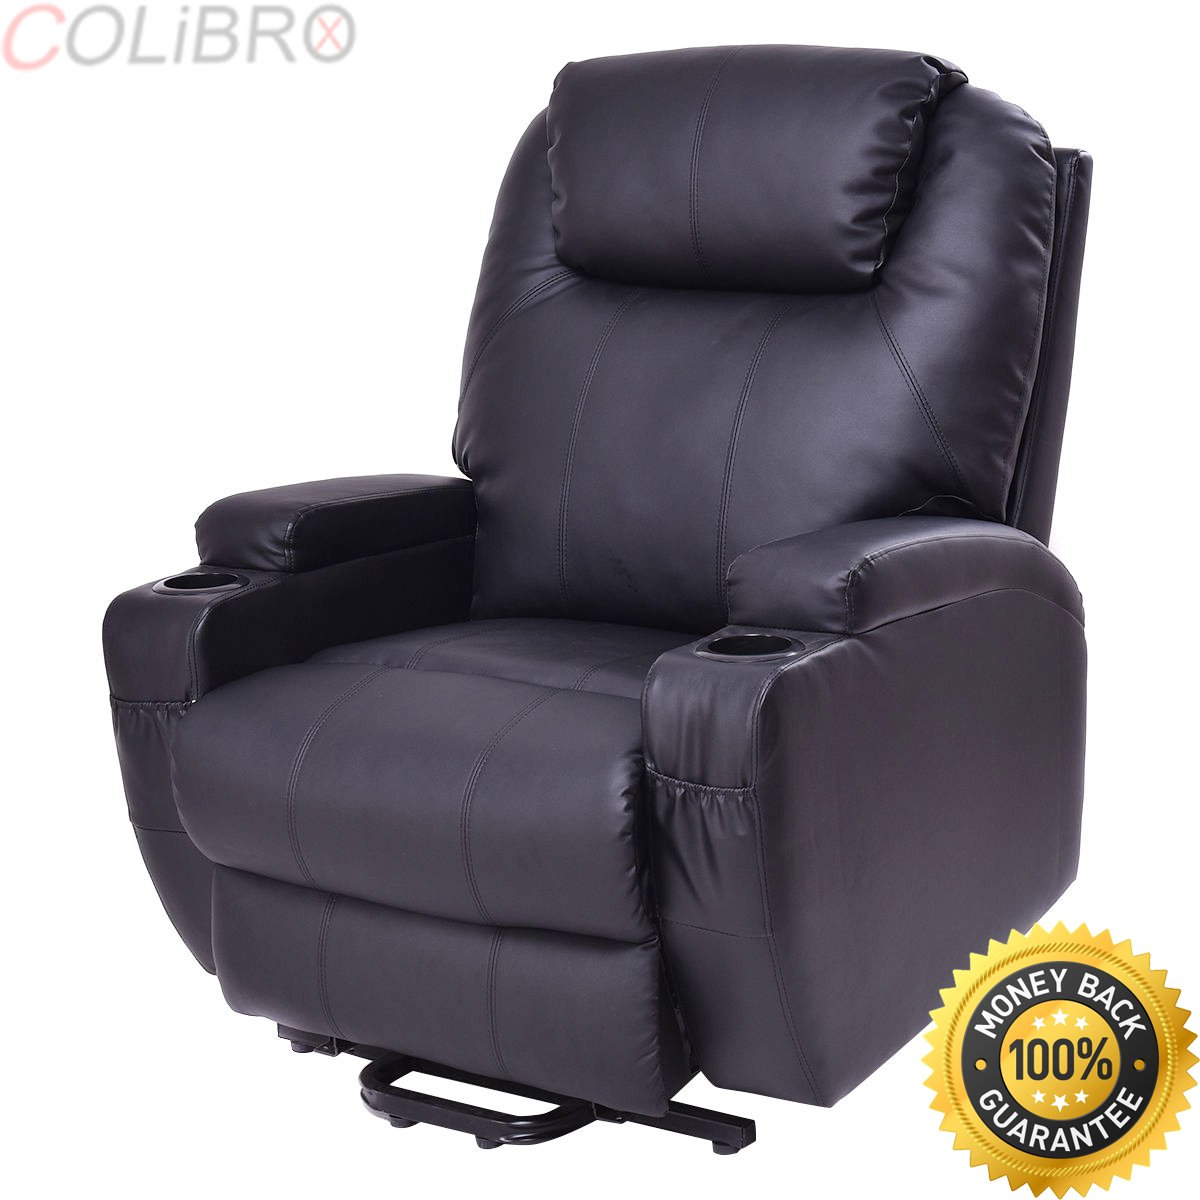 COLIBROX--Lift Chair Electric Power Recliner w/Remote and Cup Holder Living Room Furniture.